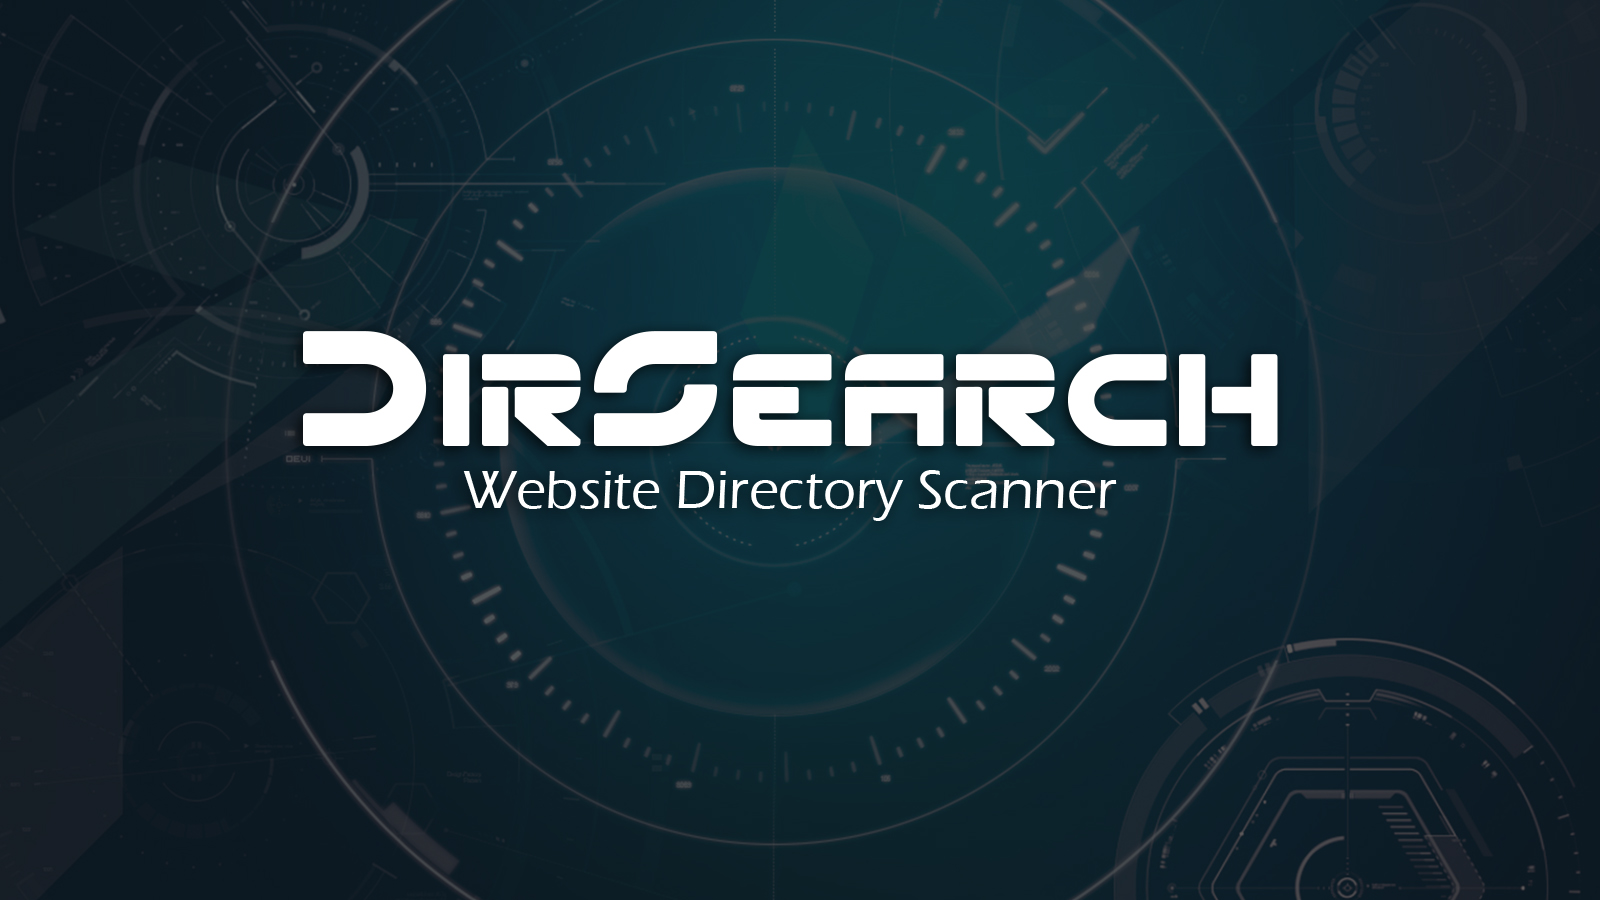 DirSearch - Website Directory Scanner